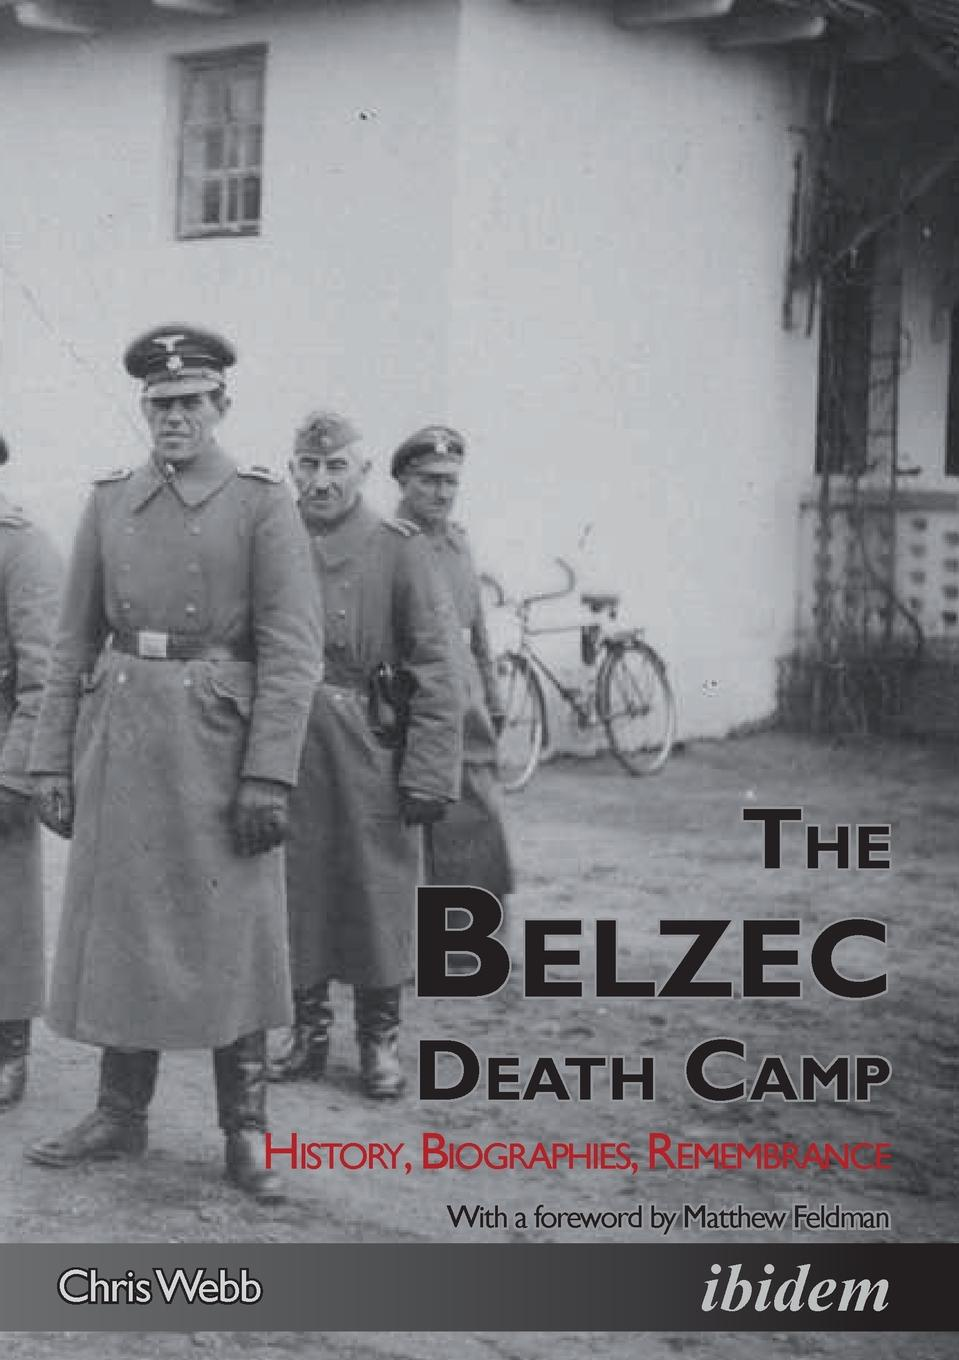 Chris Webb The Belzec Death Camp. History, Biographies, Remembrance malcolm kemp extreme events robust portfolio construction in the presence of fat tails isbn 9780470976791